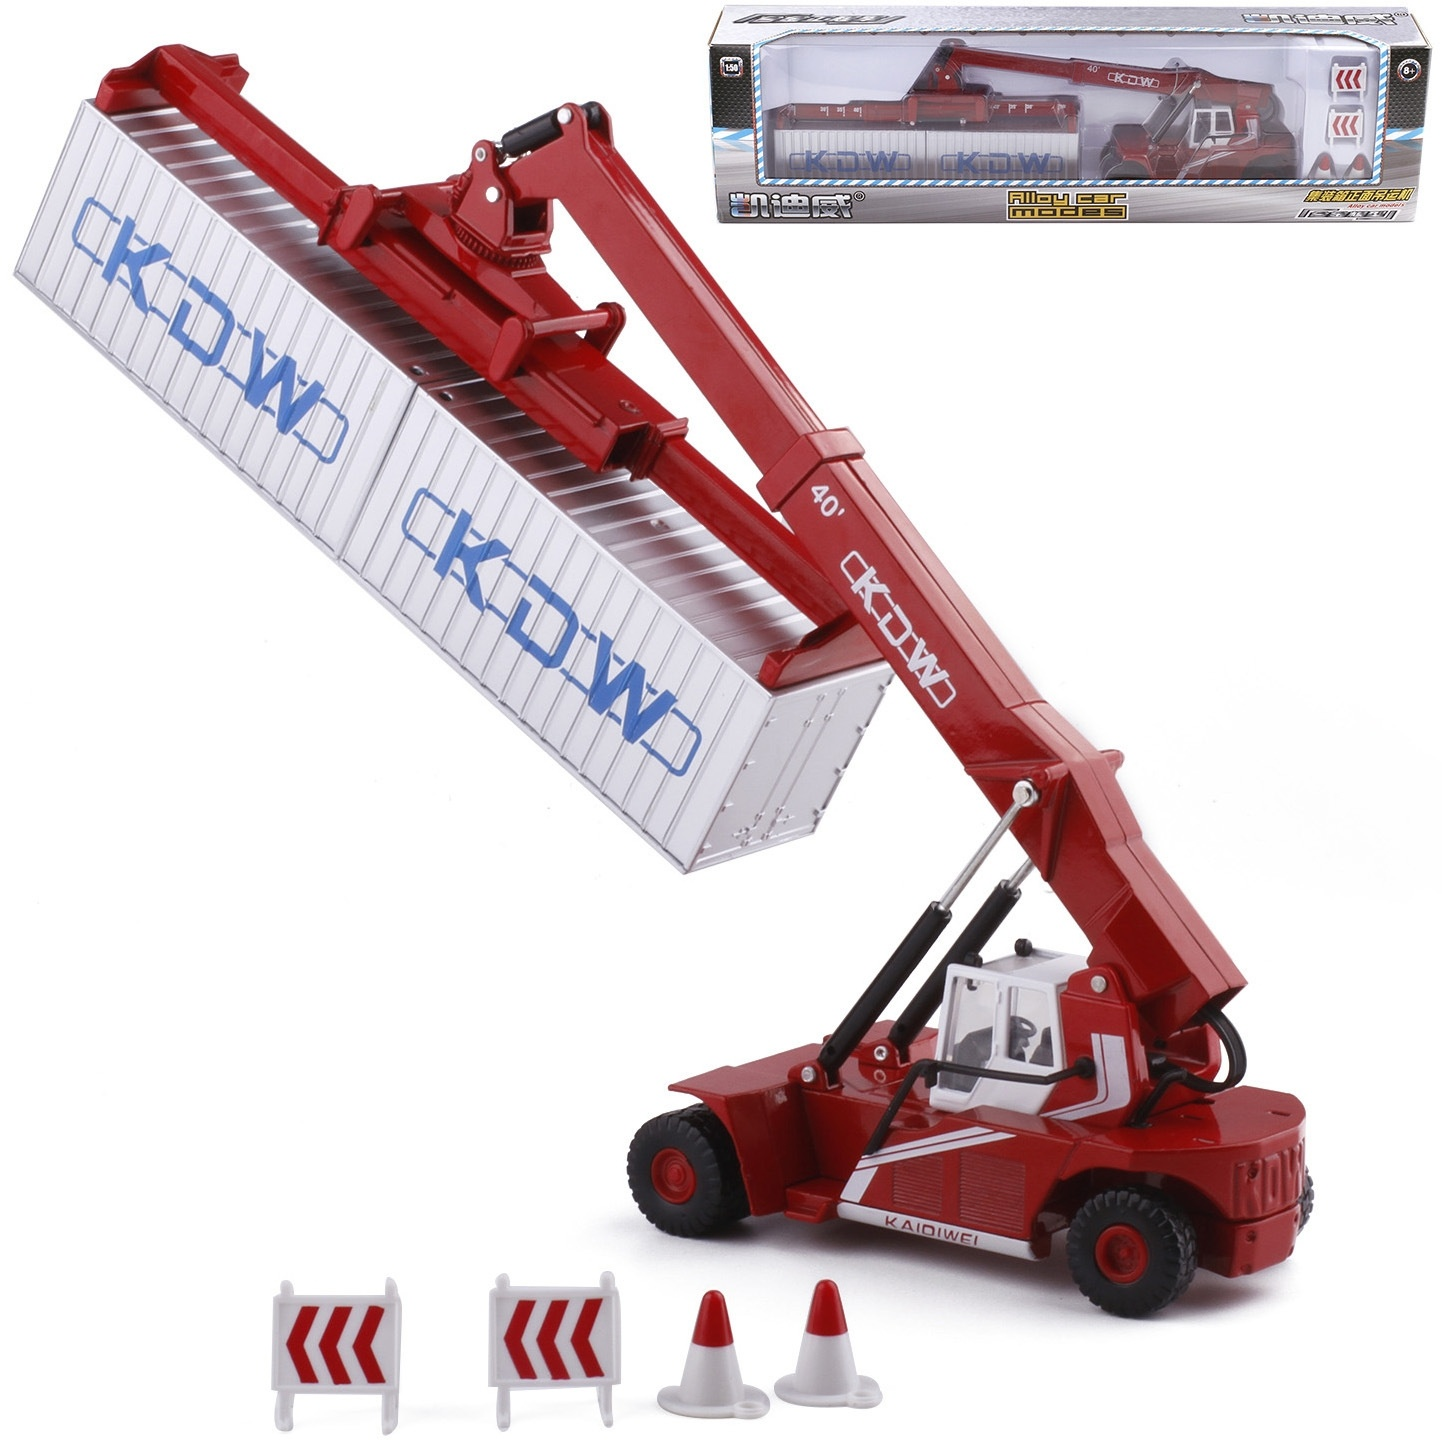 1/50 Scale High Quality Reach Stacker Die-cast Engineering Truck Model Toy For Boys